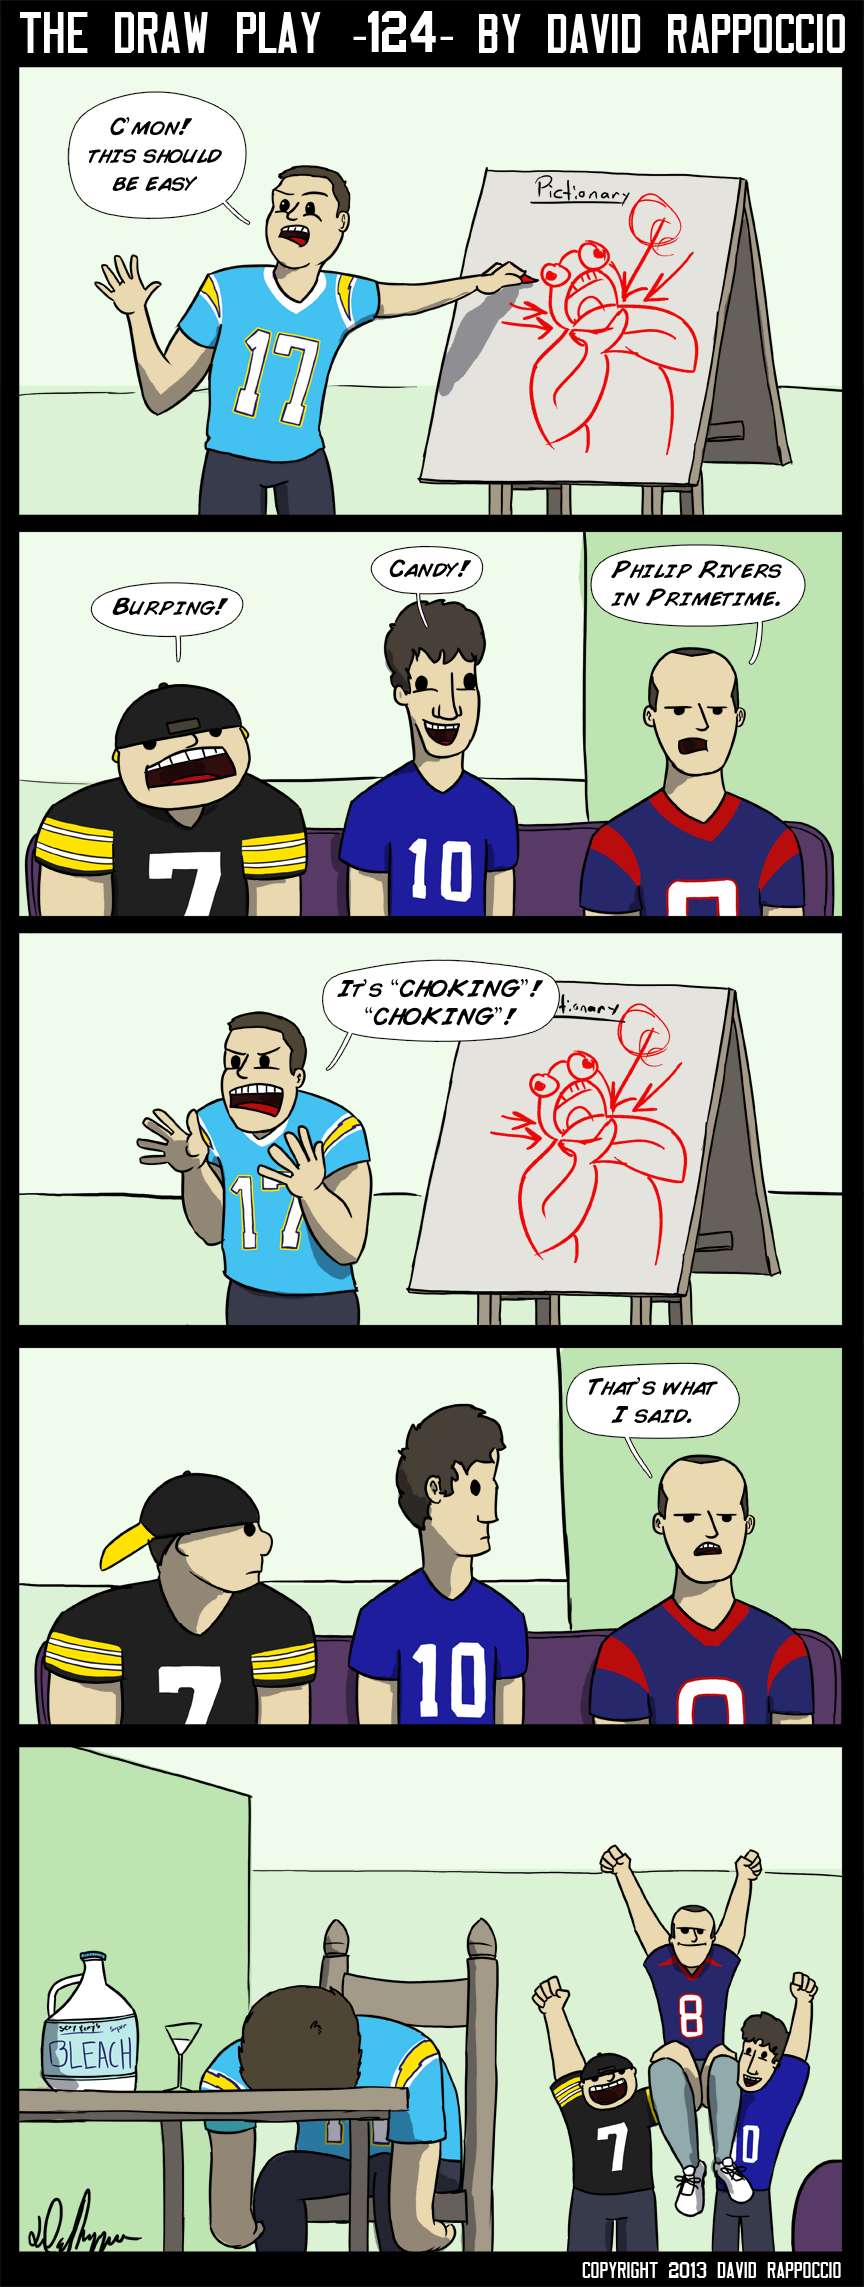 Monday Night Meltdown, a Philip Rivers copyright.